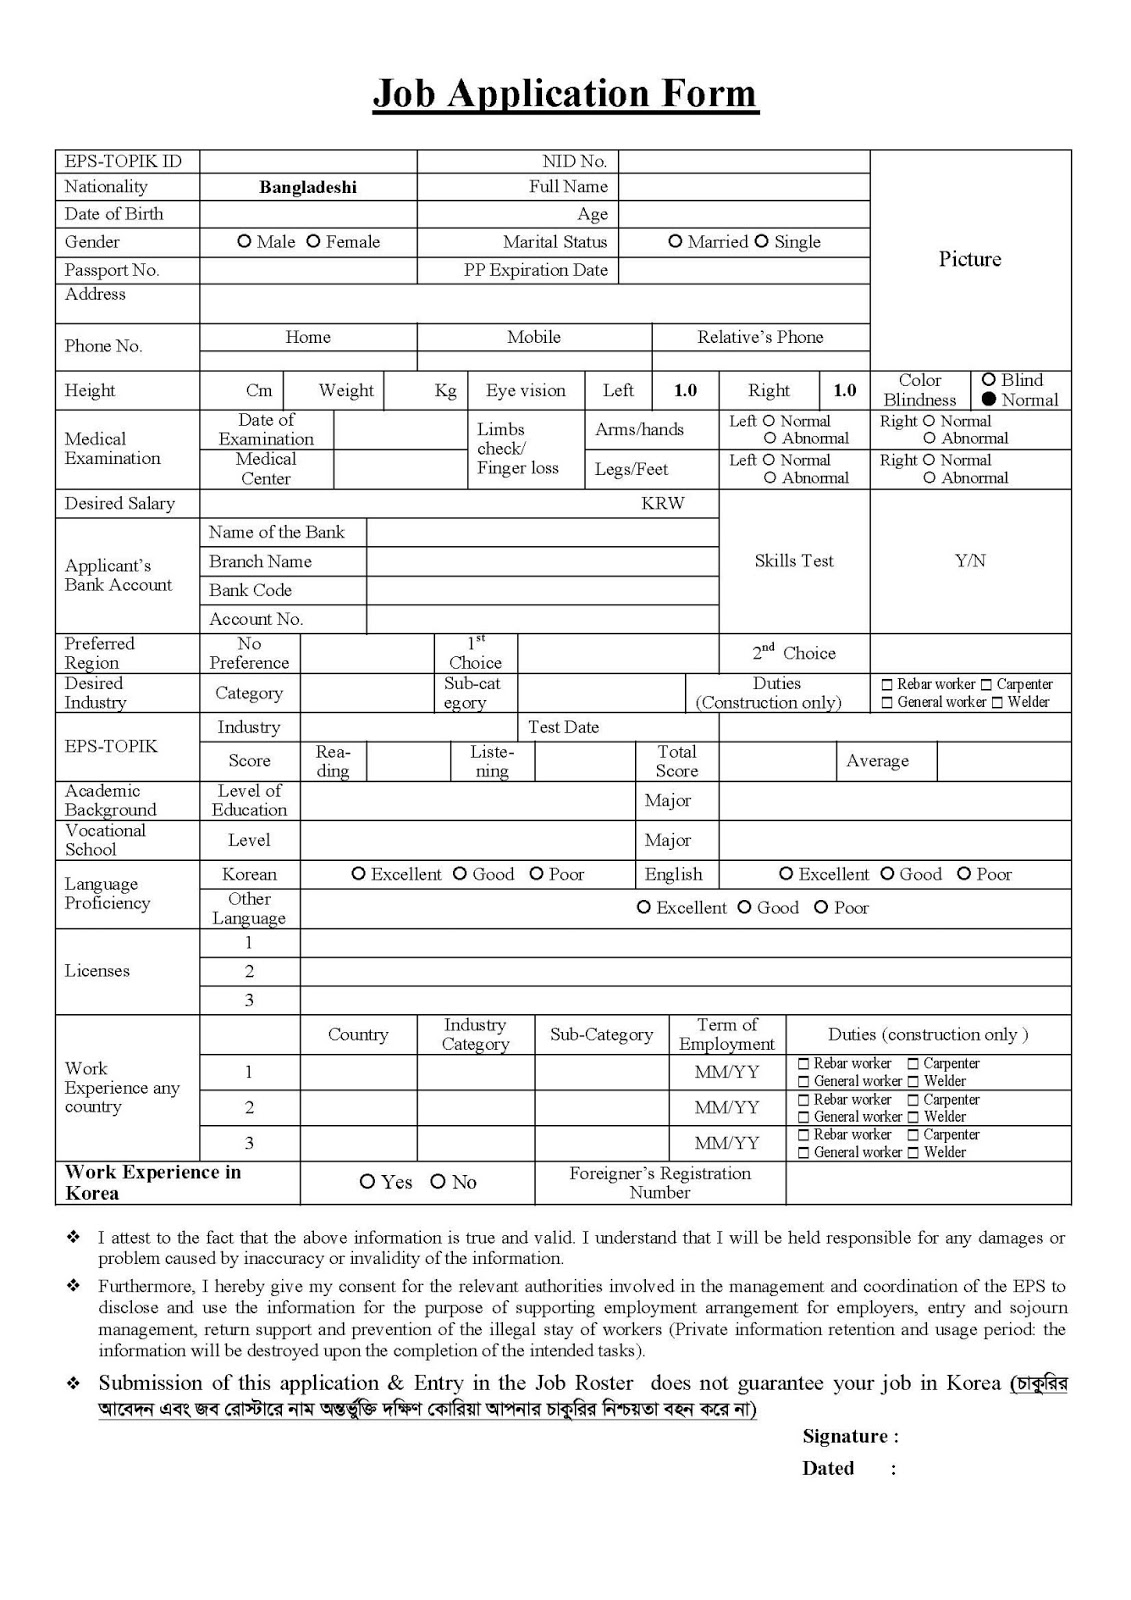 Eps topik korean information job application form and other job application form and other necessary documents for eps topik bangladeshi falaconquin